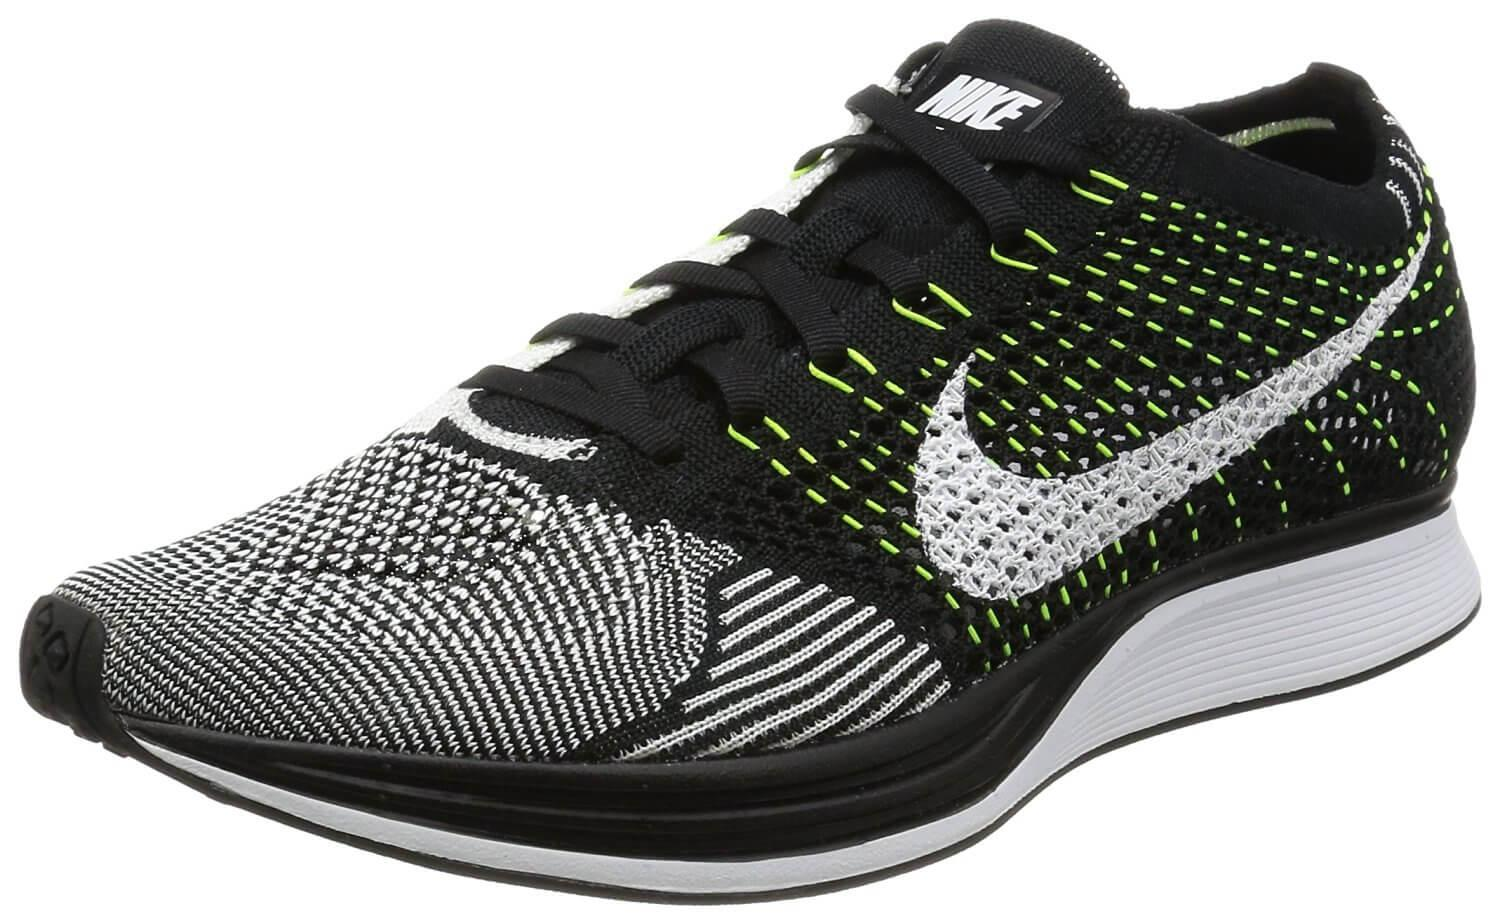 034d1d90b9ef7c Nike Flyknit Racer Reviewed - To Buy or Not in May 2019